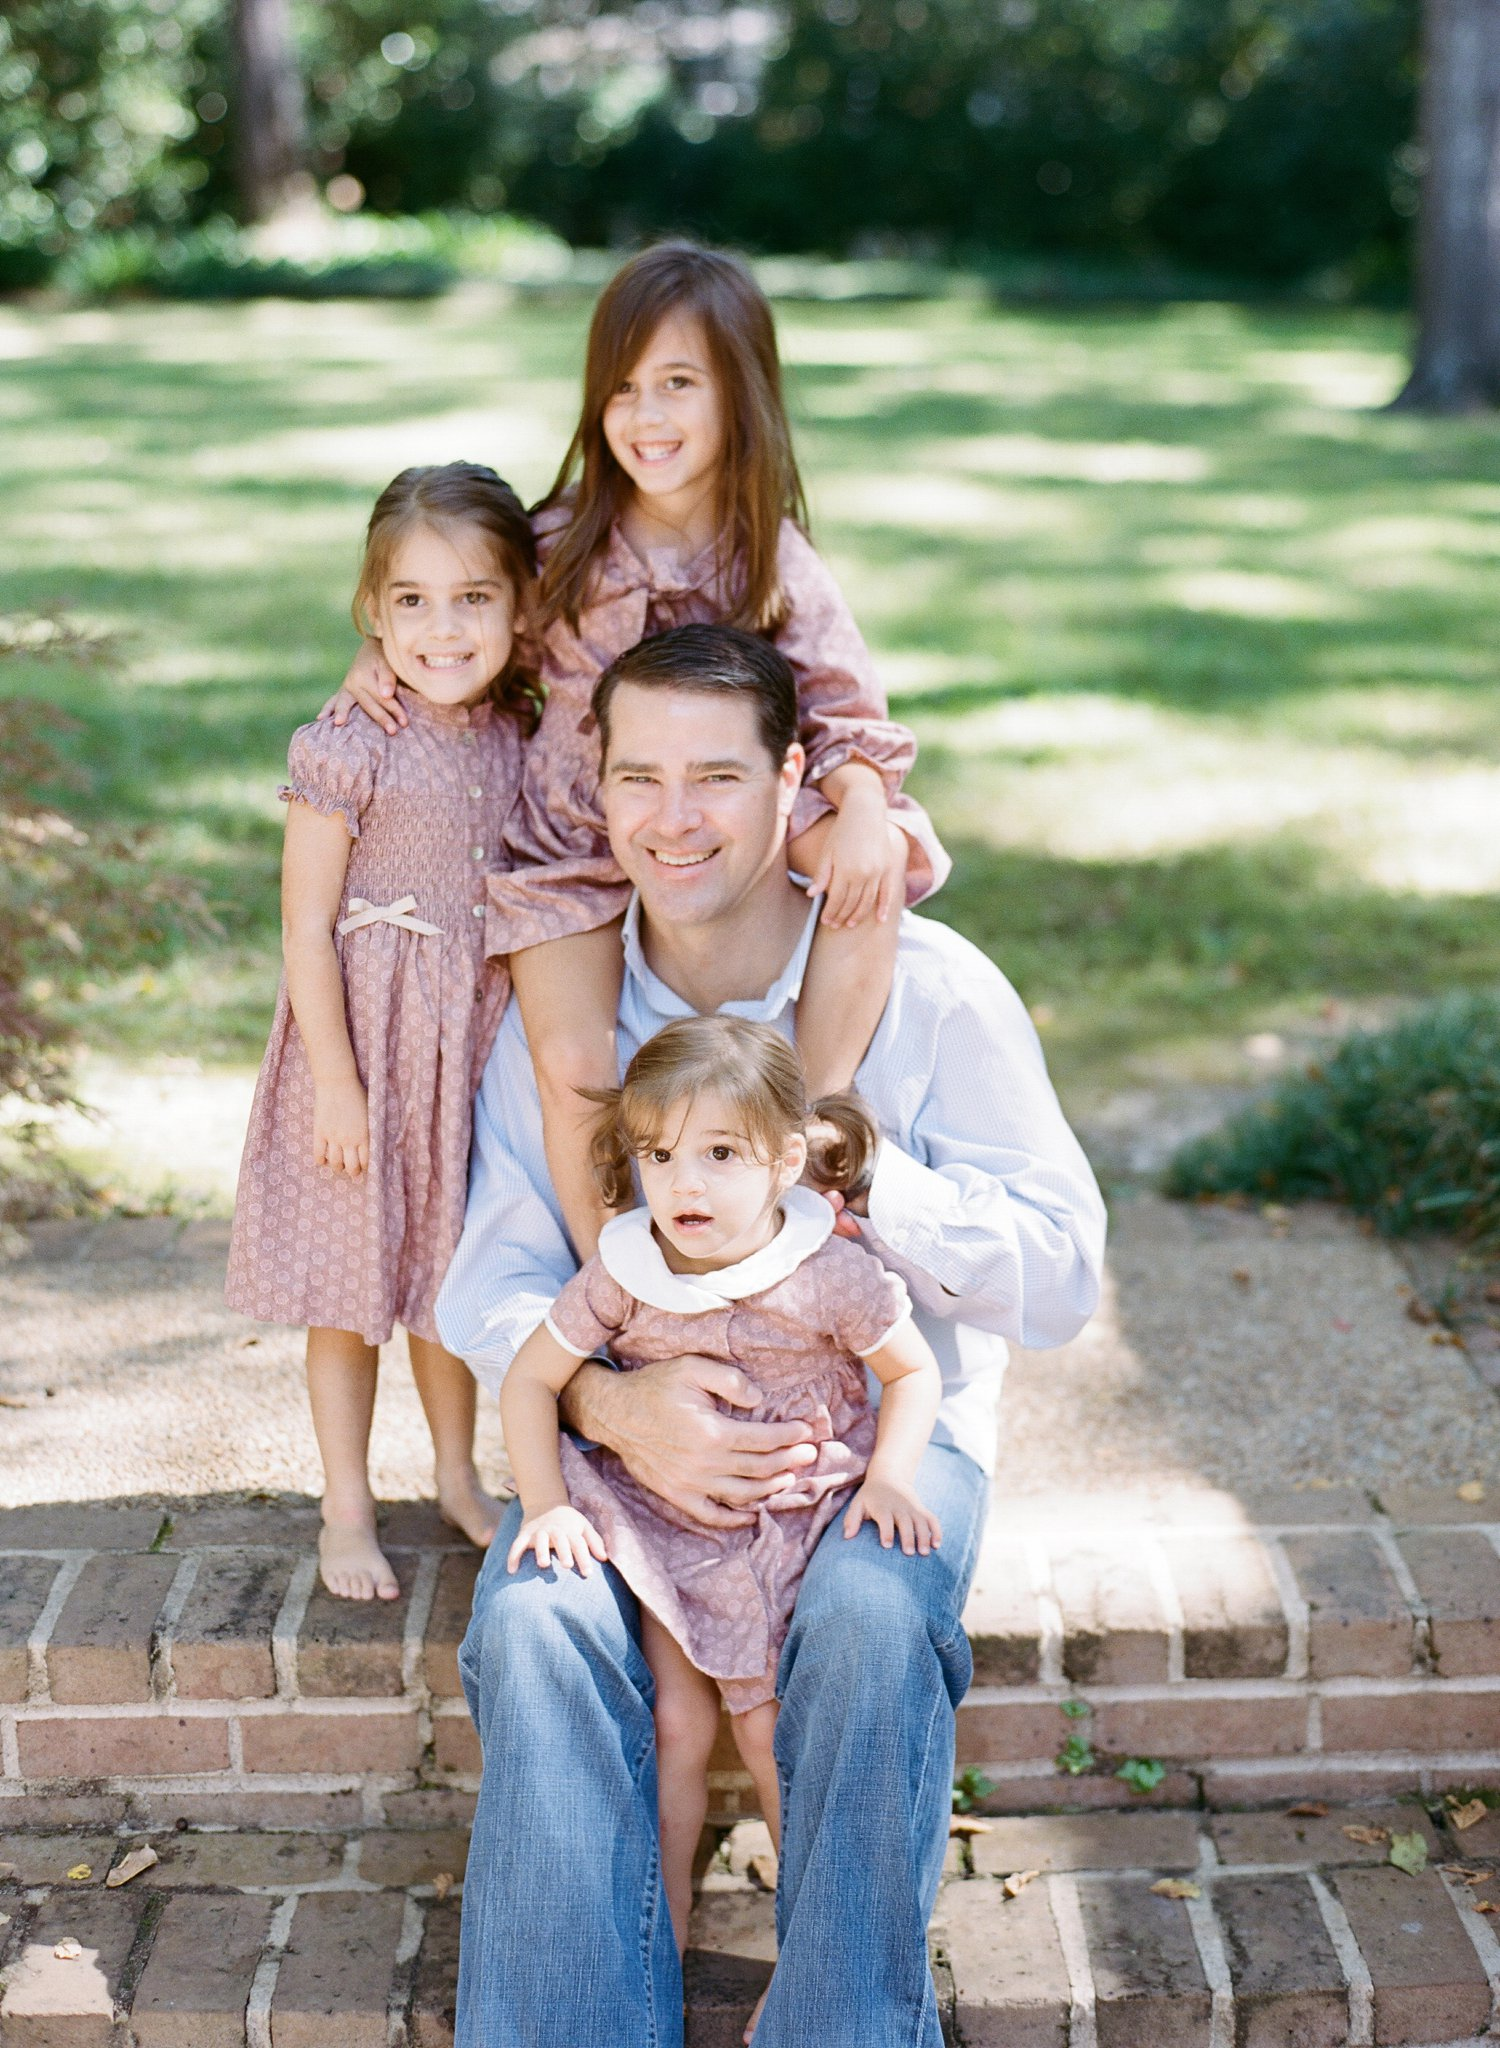 tallahassee family photographer shannon griffin photography_0047.jpg